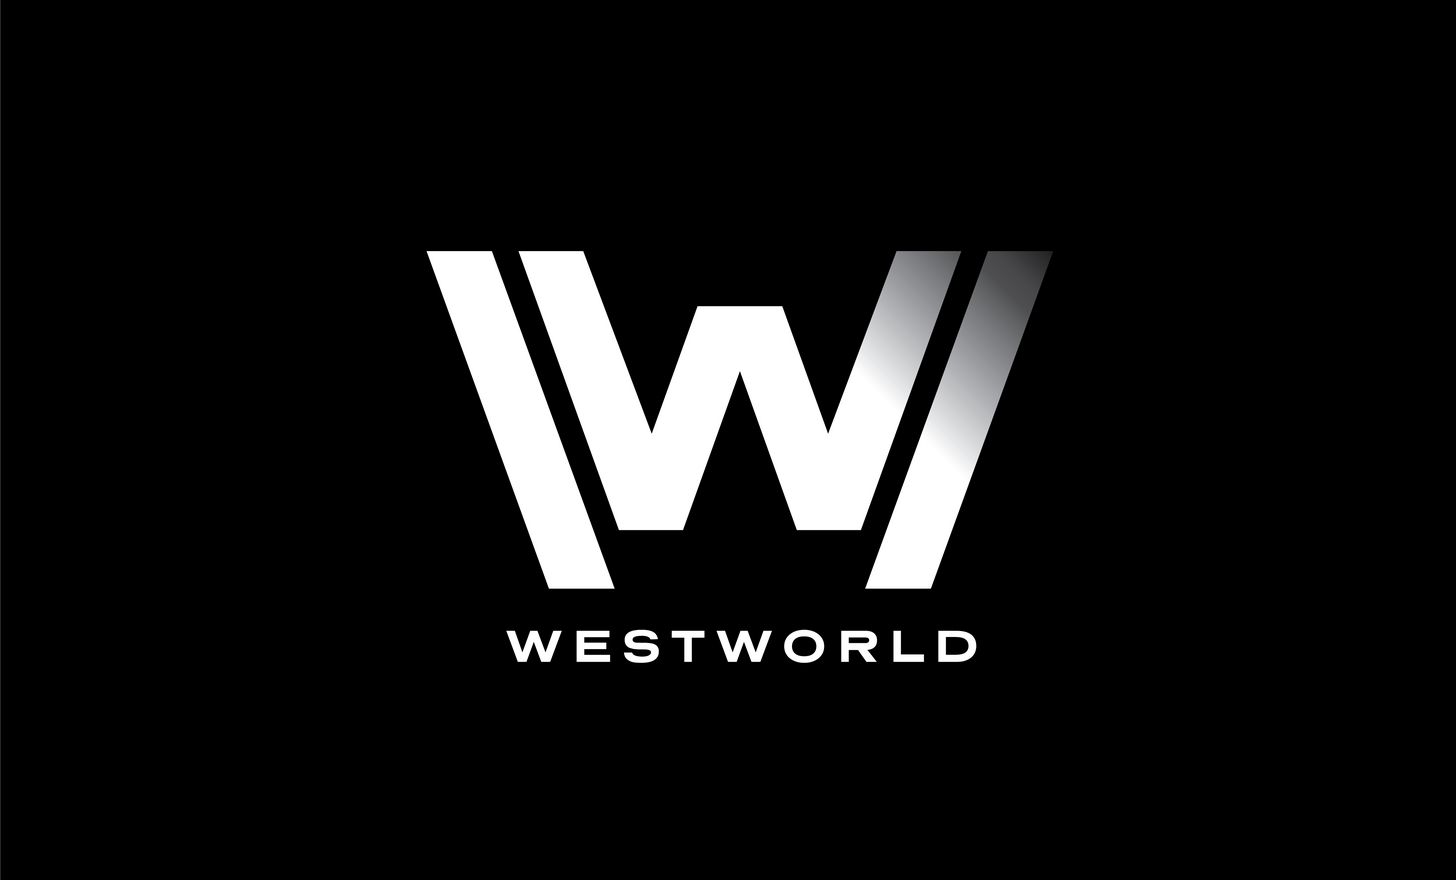 Imgur The Most Awesome Images On The Internet Westworld Tv Show Logos Westworld Tv Series